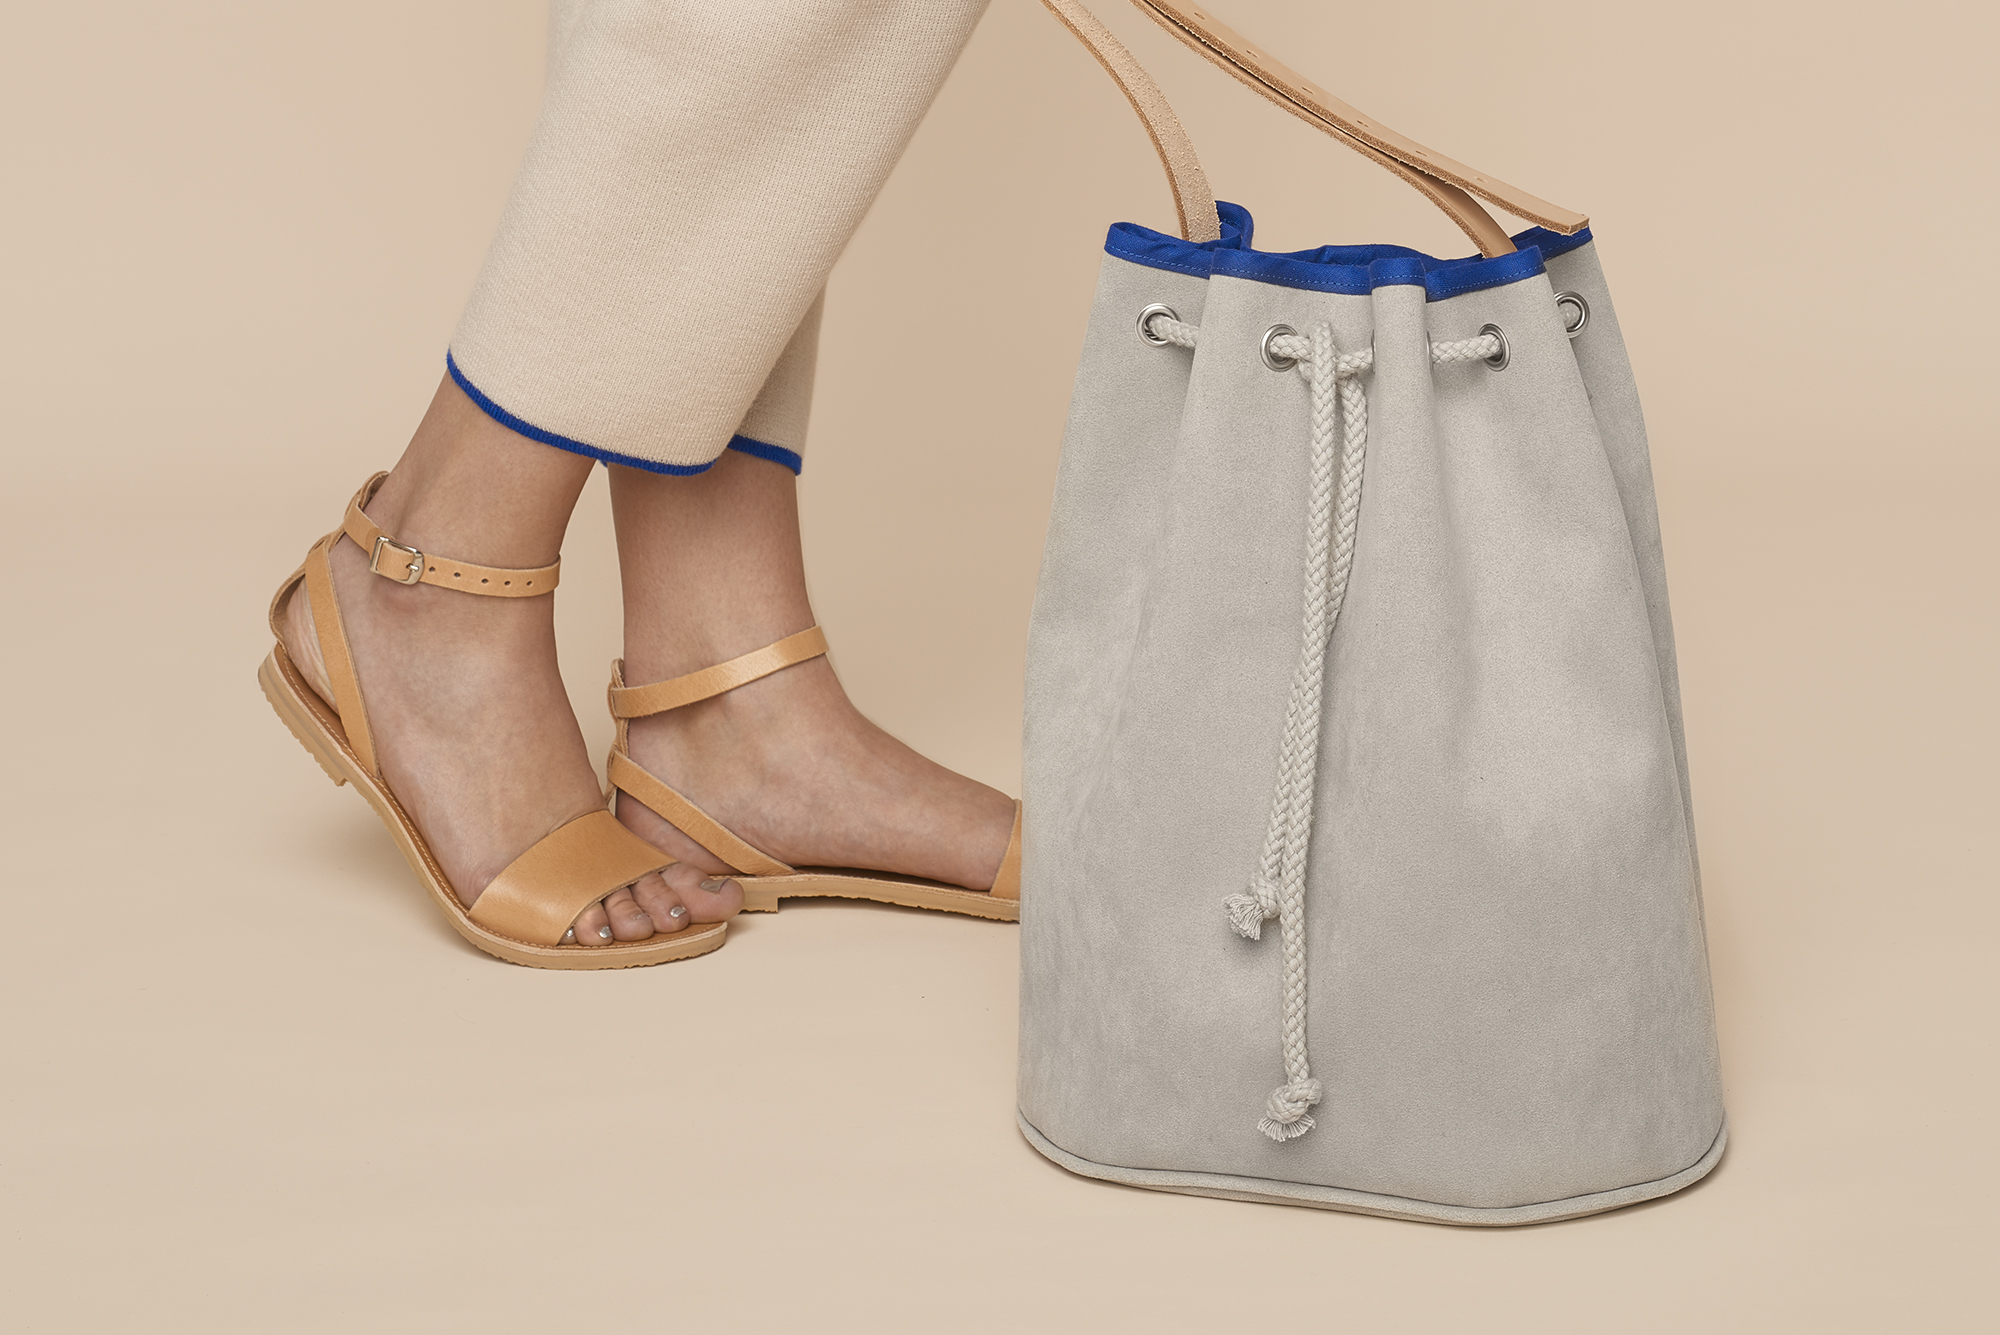 Alcantara or faux leather Bucket Bag with leather straps